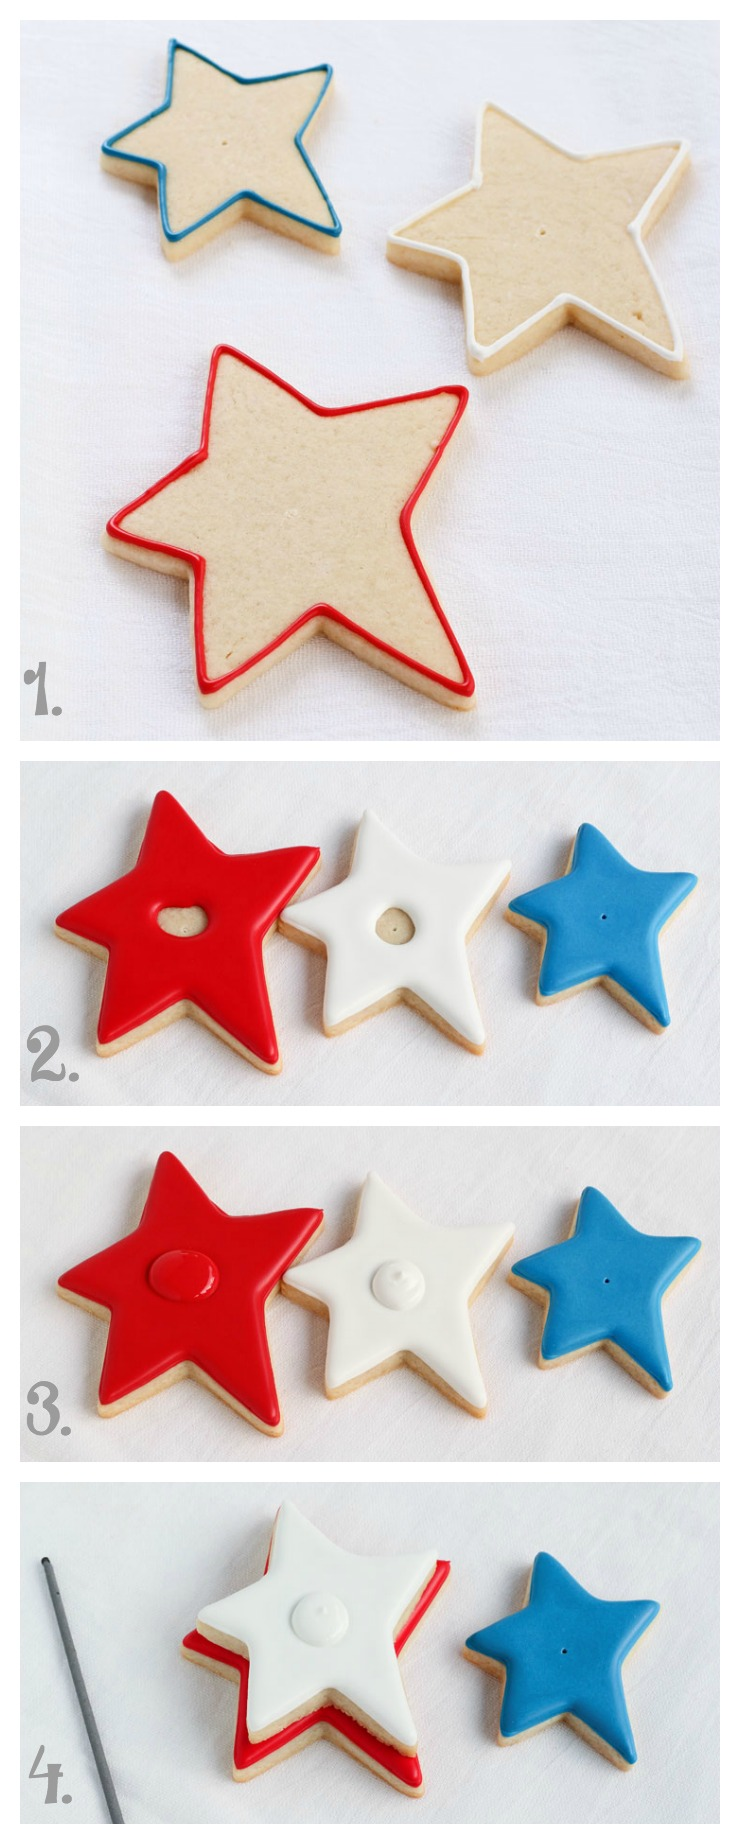 How to make These Simple Star Cookies that Actually Sparkle via www.thebearfootbaker.com